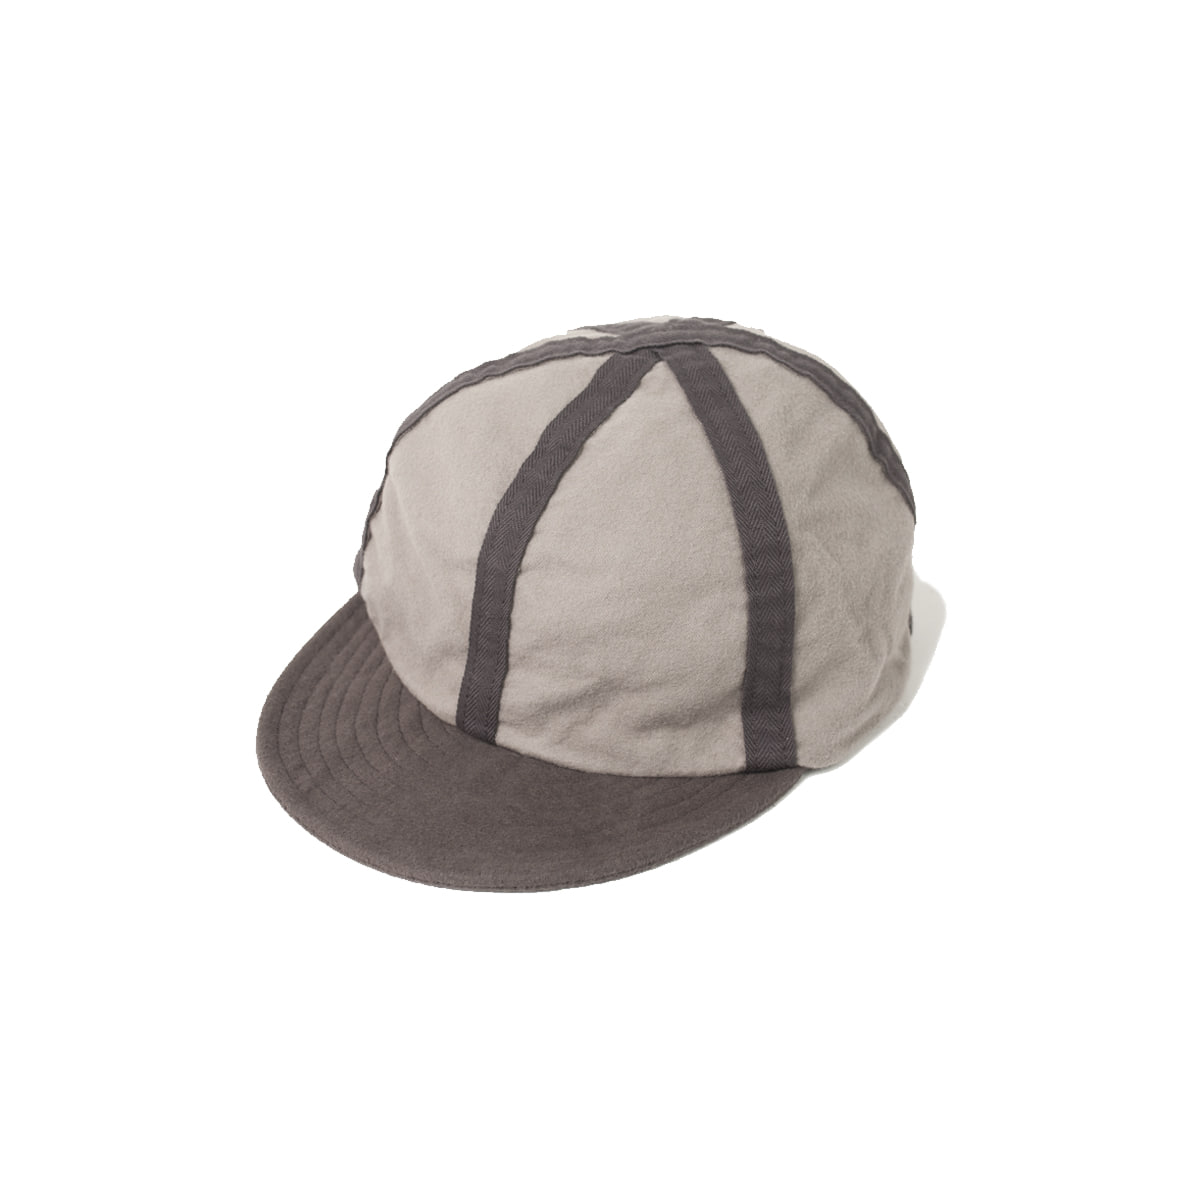 [DECHO] FATIGUE CAP 'BEIGE/BROWN'